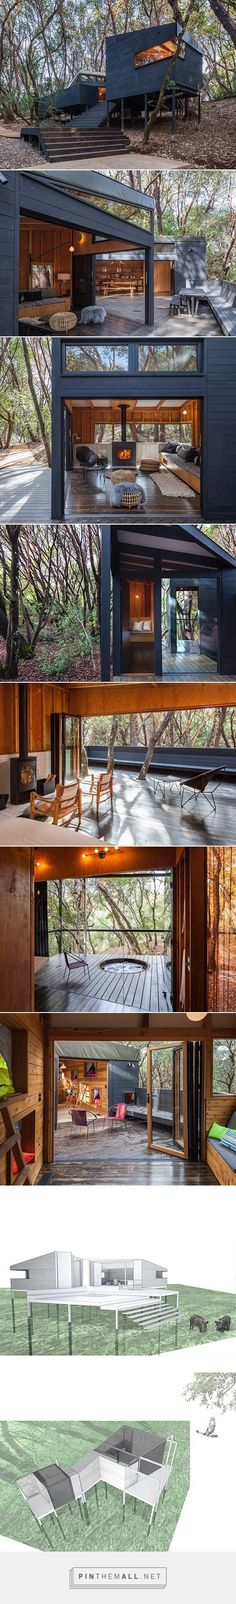 Modern House Design 038 Architecture Forest House envelopeA D created via pinthemallModern House Design 038 Architecture Forest House envelopeAD created via pinthemall Chalet Design, Design Hotel, Design Design, Future House, Casas Containers, Design Exterior, Building A Container Home, Forest House, Modern House Design